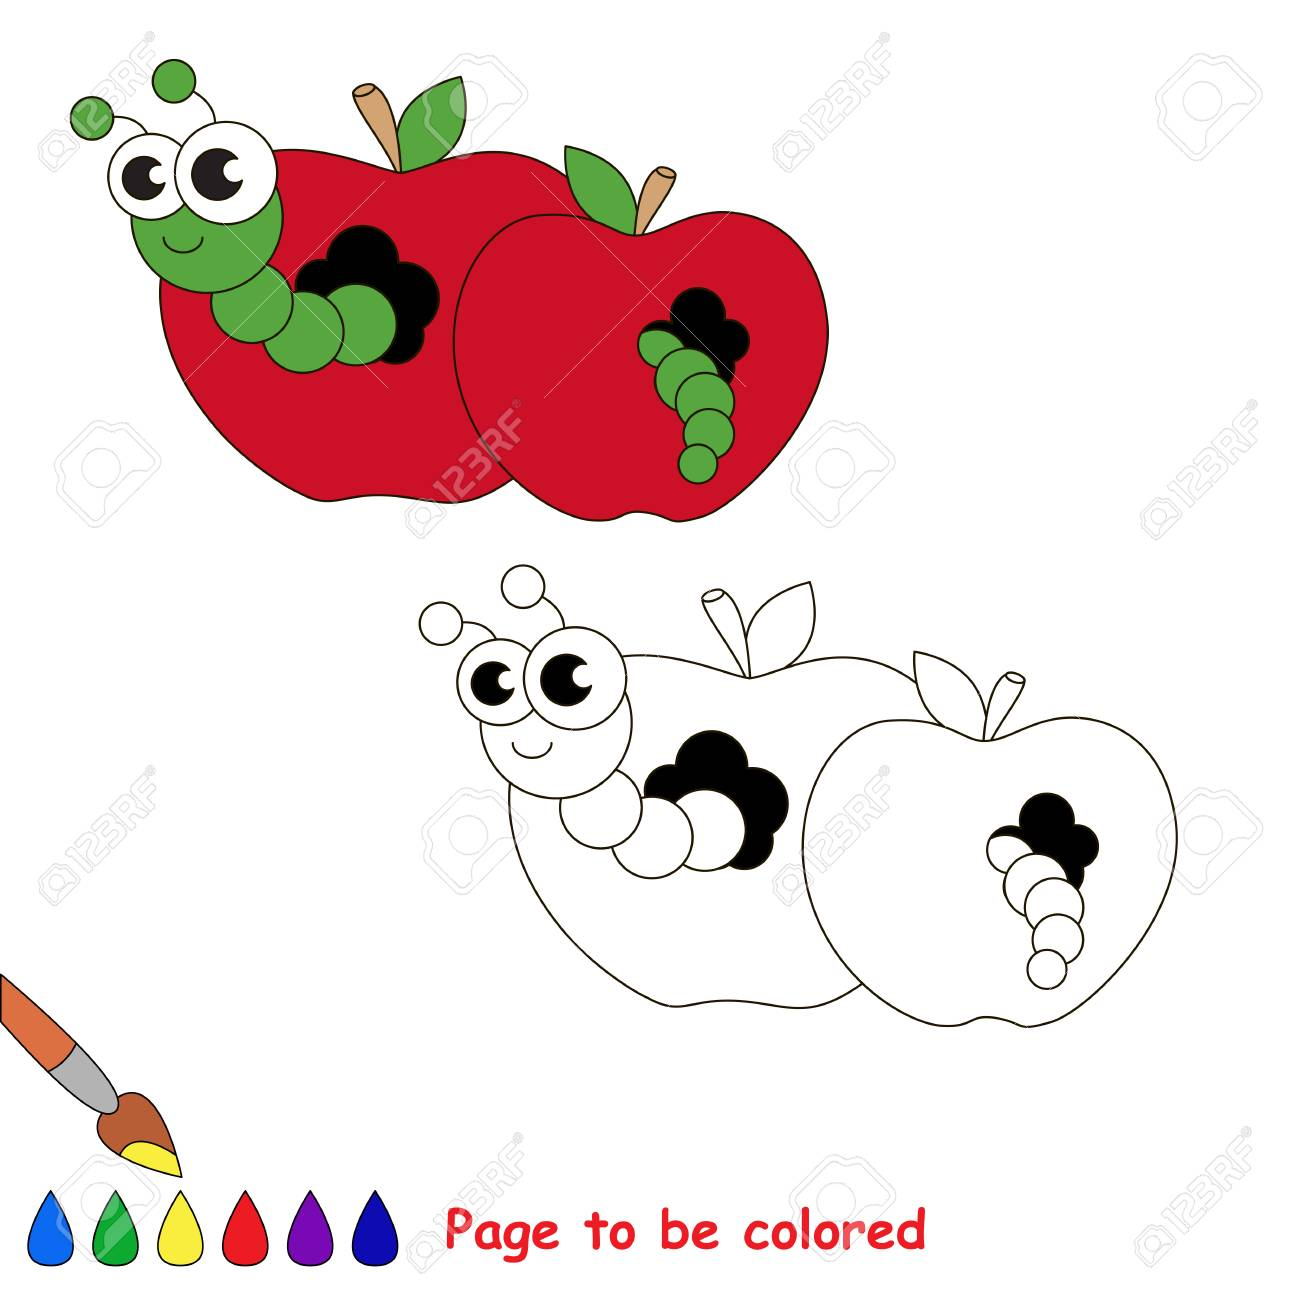 Red Apple And Worm To Be Colored Coloring Book Educate Kids Learn Colors